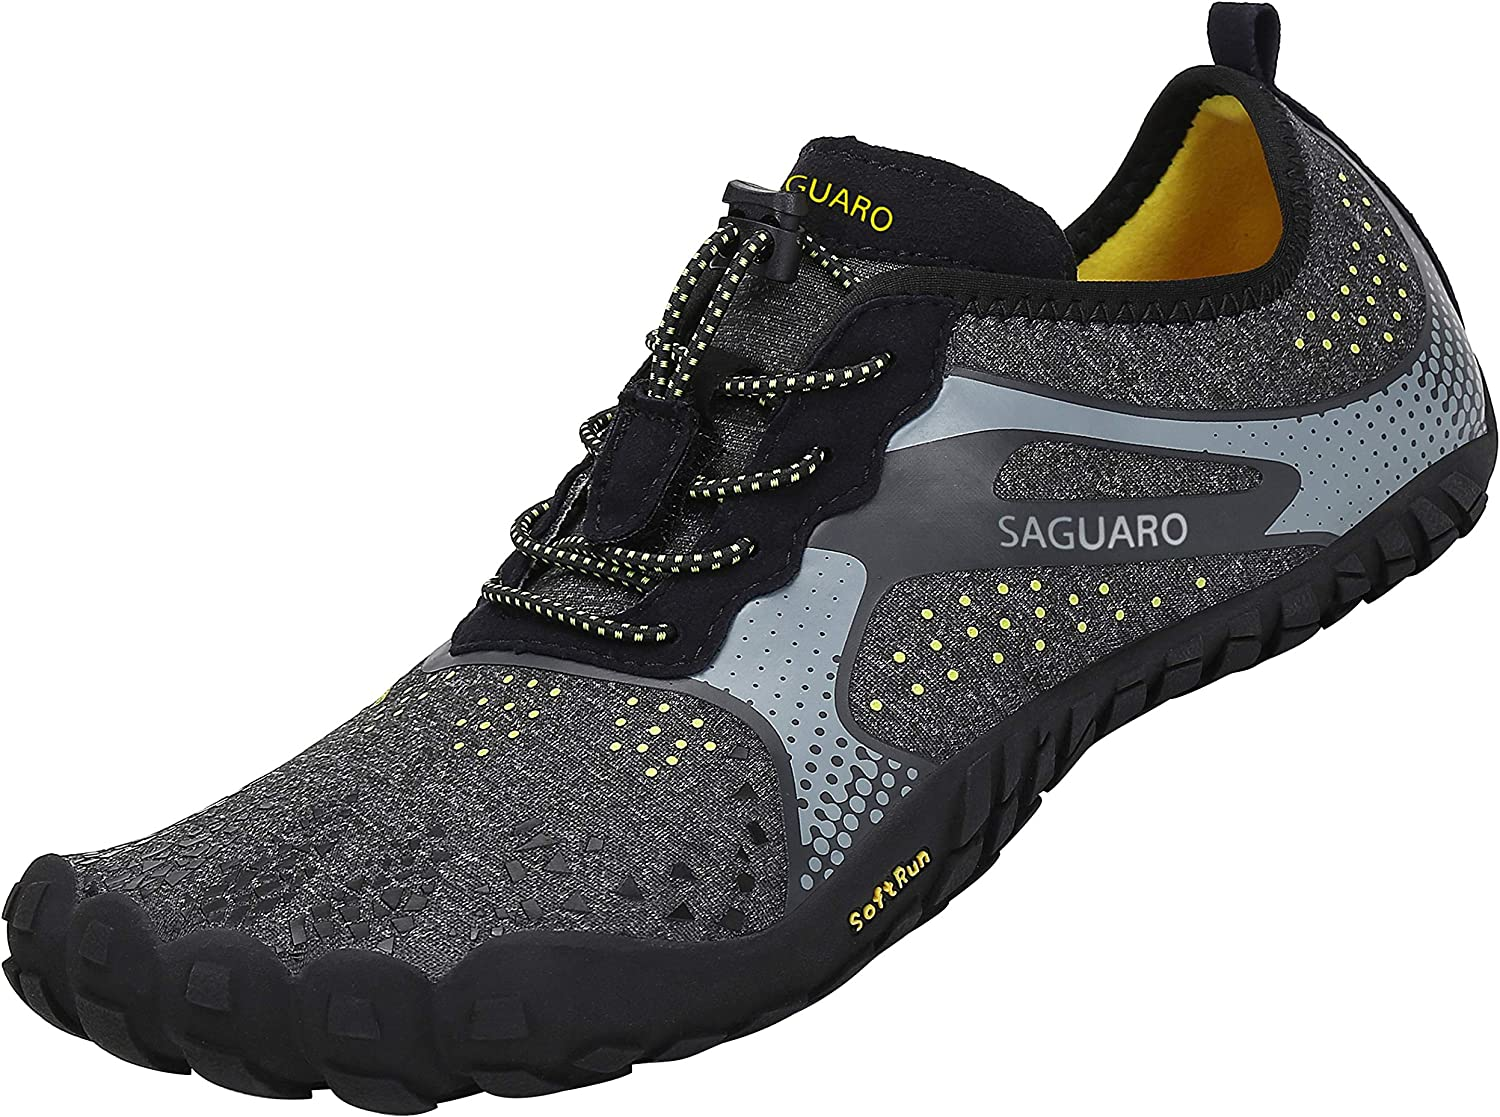 SAGUARO Chaussures de Trail Running Homme Femme Chaussures Minimalistes Chaussures de Sport Outdoor & Indoor Gym Fitness Randonnée Escalade Marche